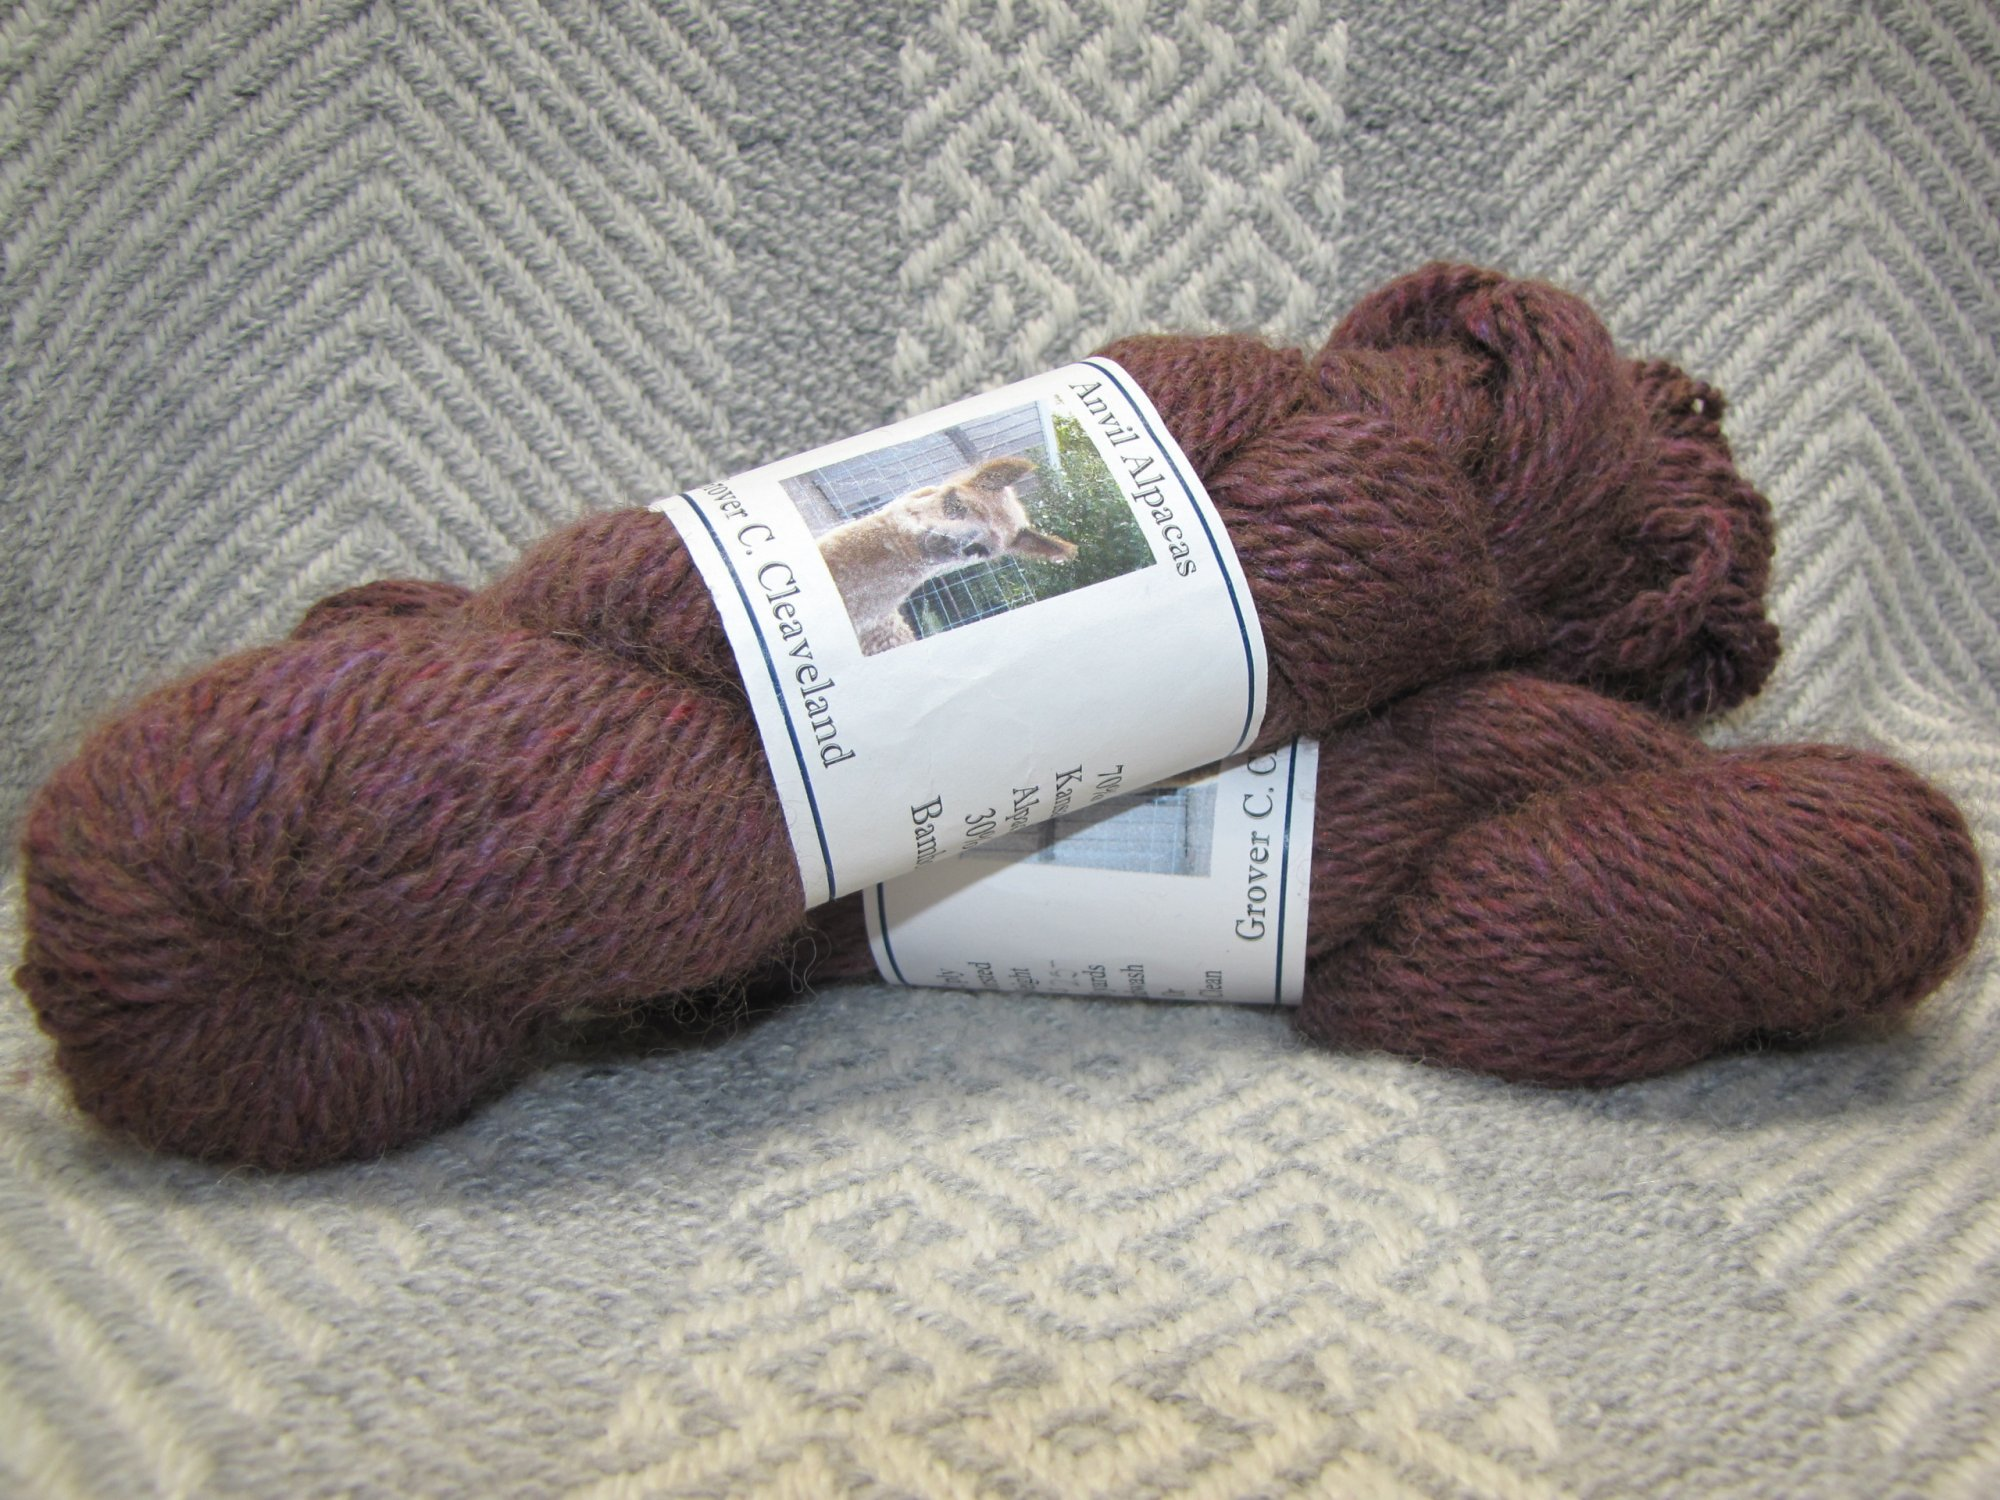 Grover C. Cleaveland, 2 Ply Worsted